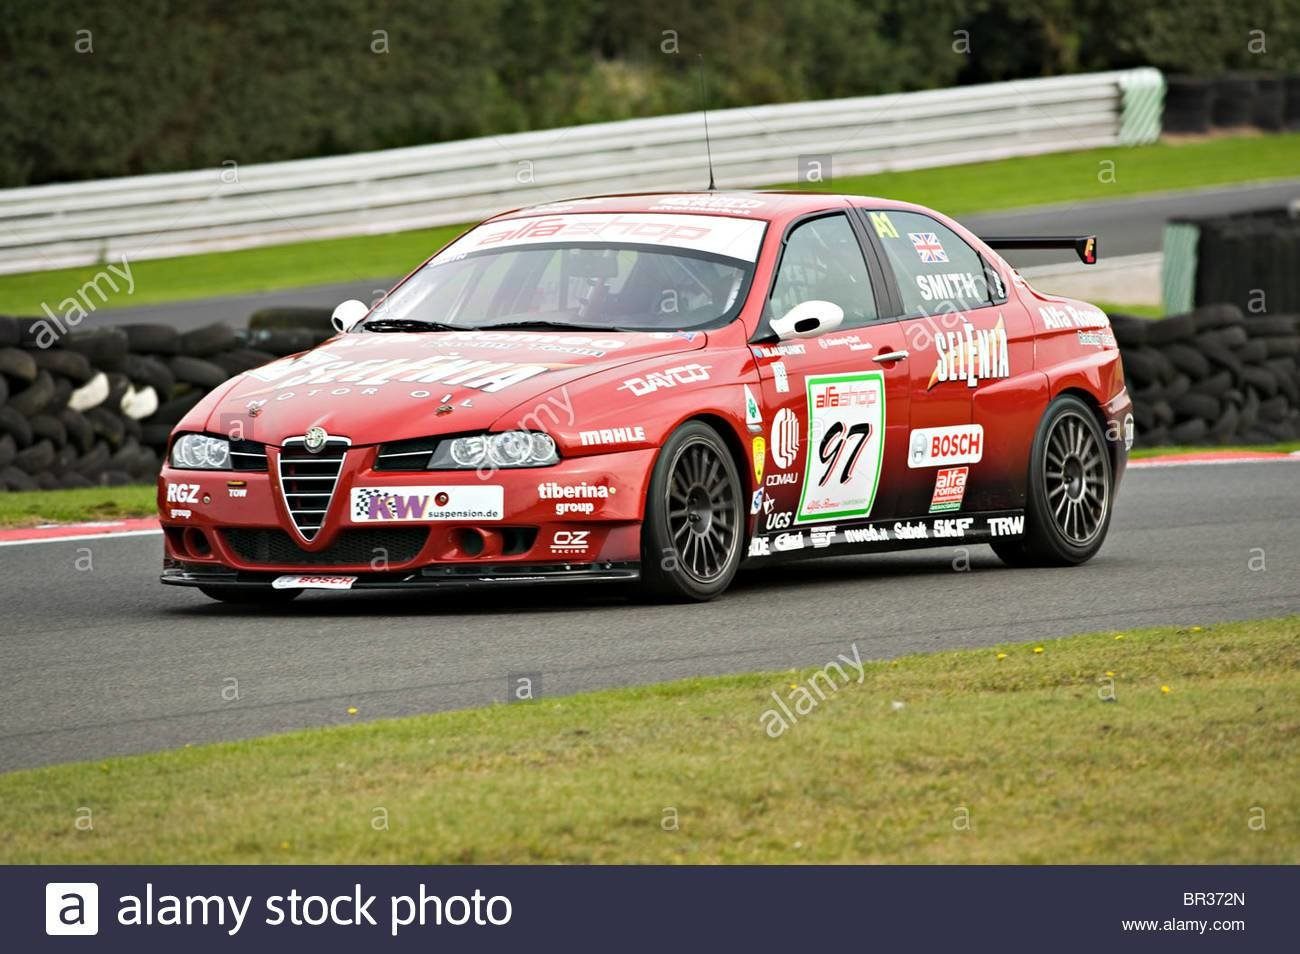 Latest Saloon Car Race Stock Photos Saloon Car Race Stock Free Download